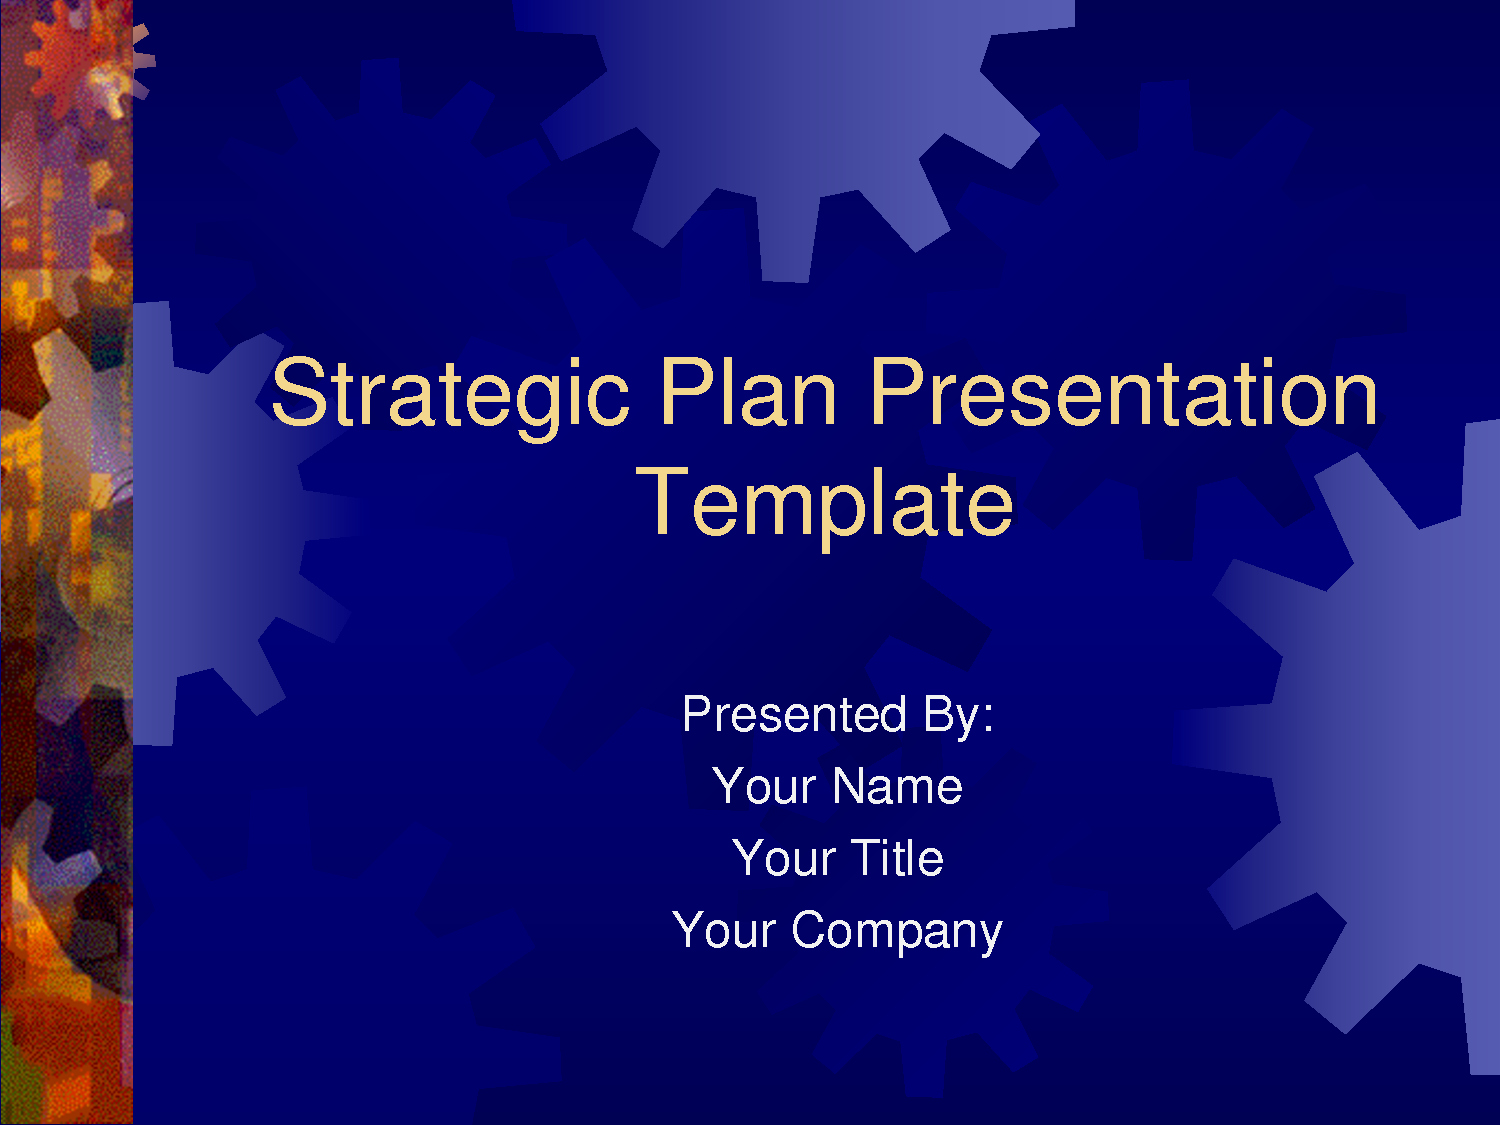 Sample Business Plan Presentation Ppt Lovely Strategic Plan Powerpoint Templates Business Plan